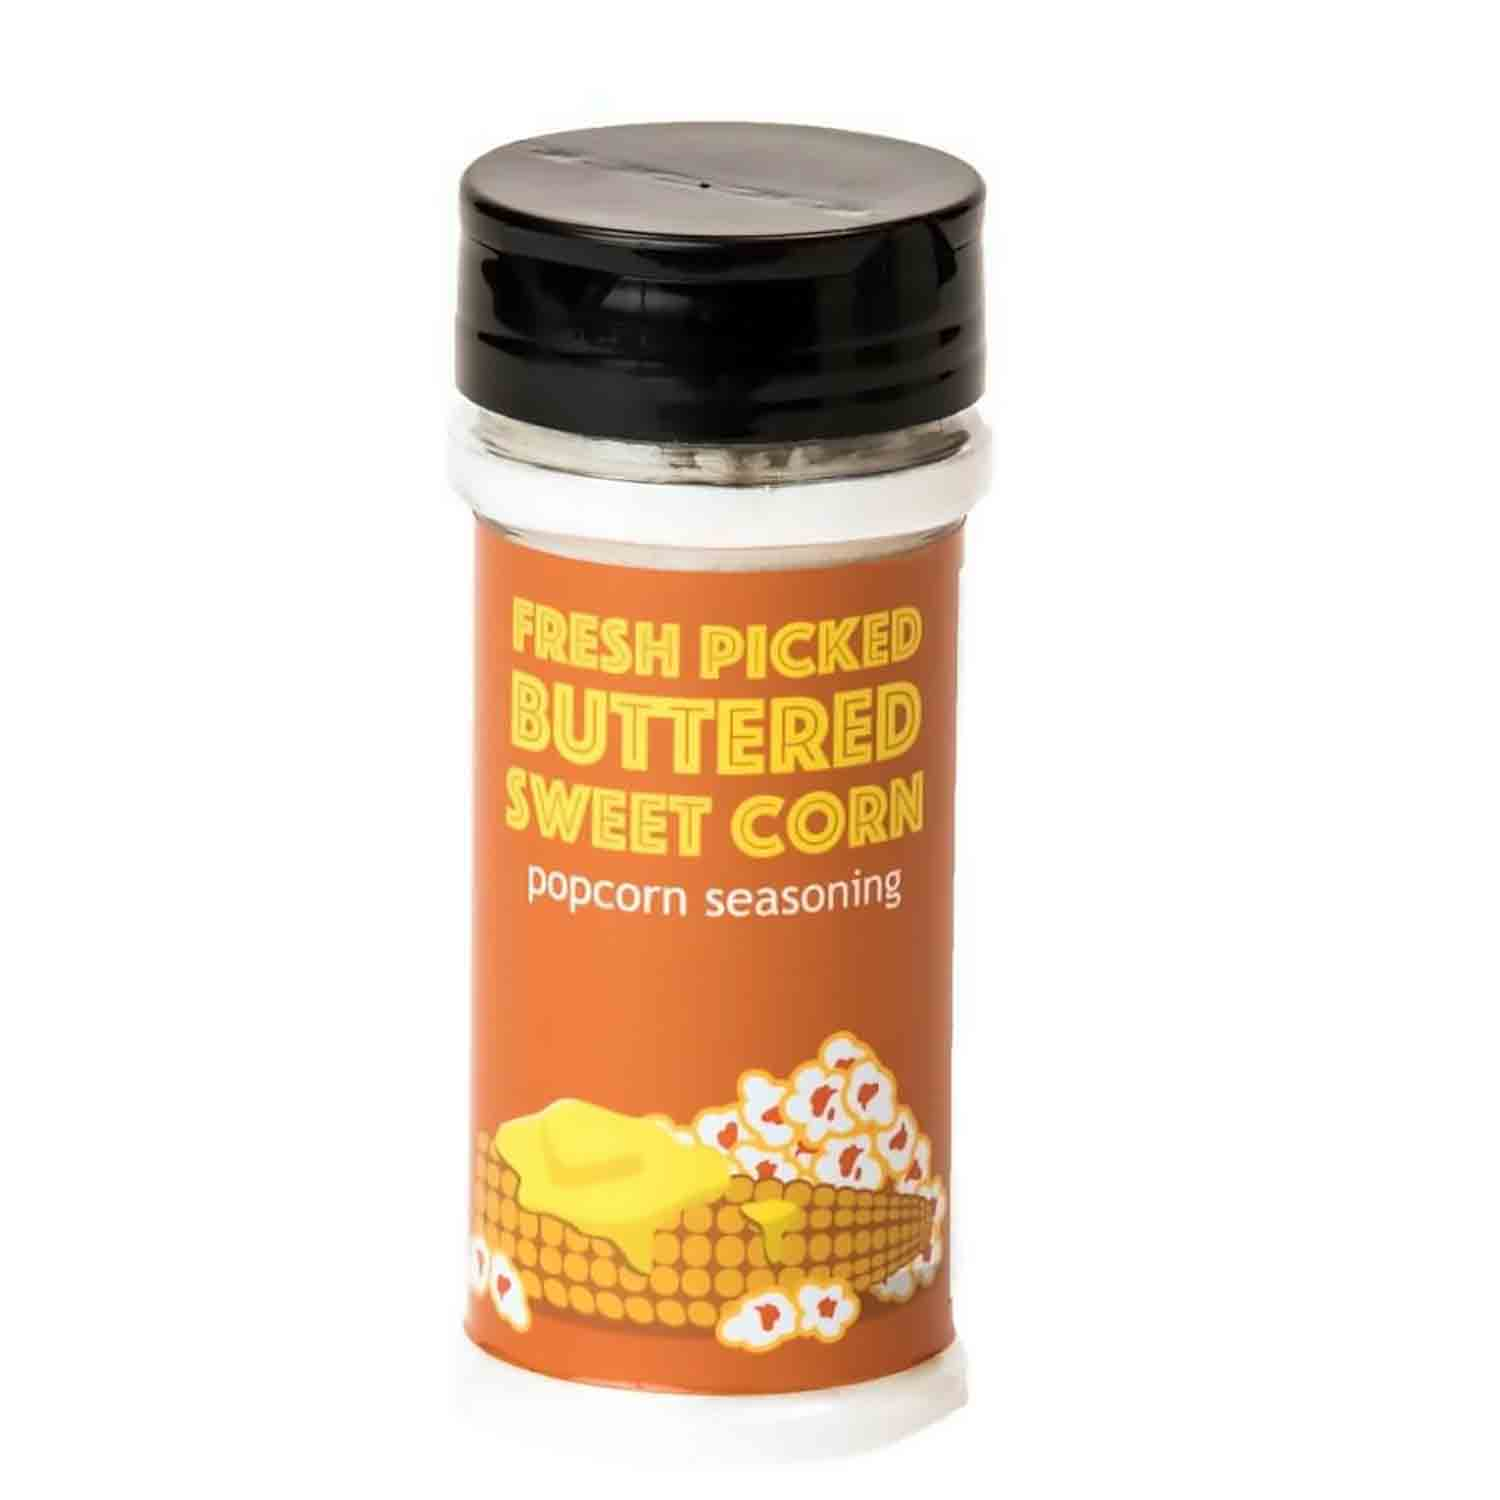 Buttered Sweet Corn Popcorn Seasoning